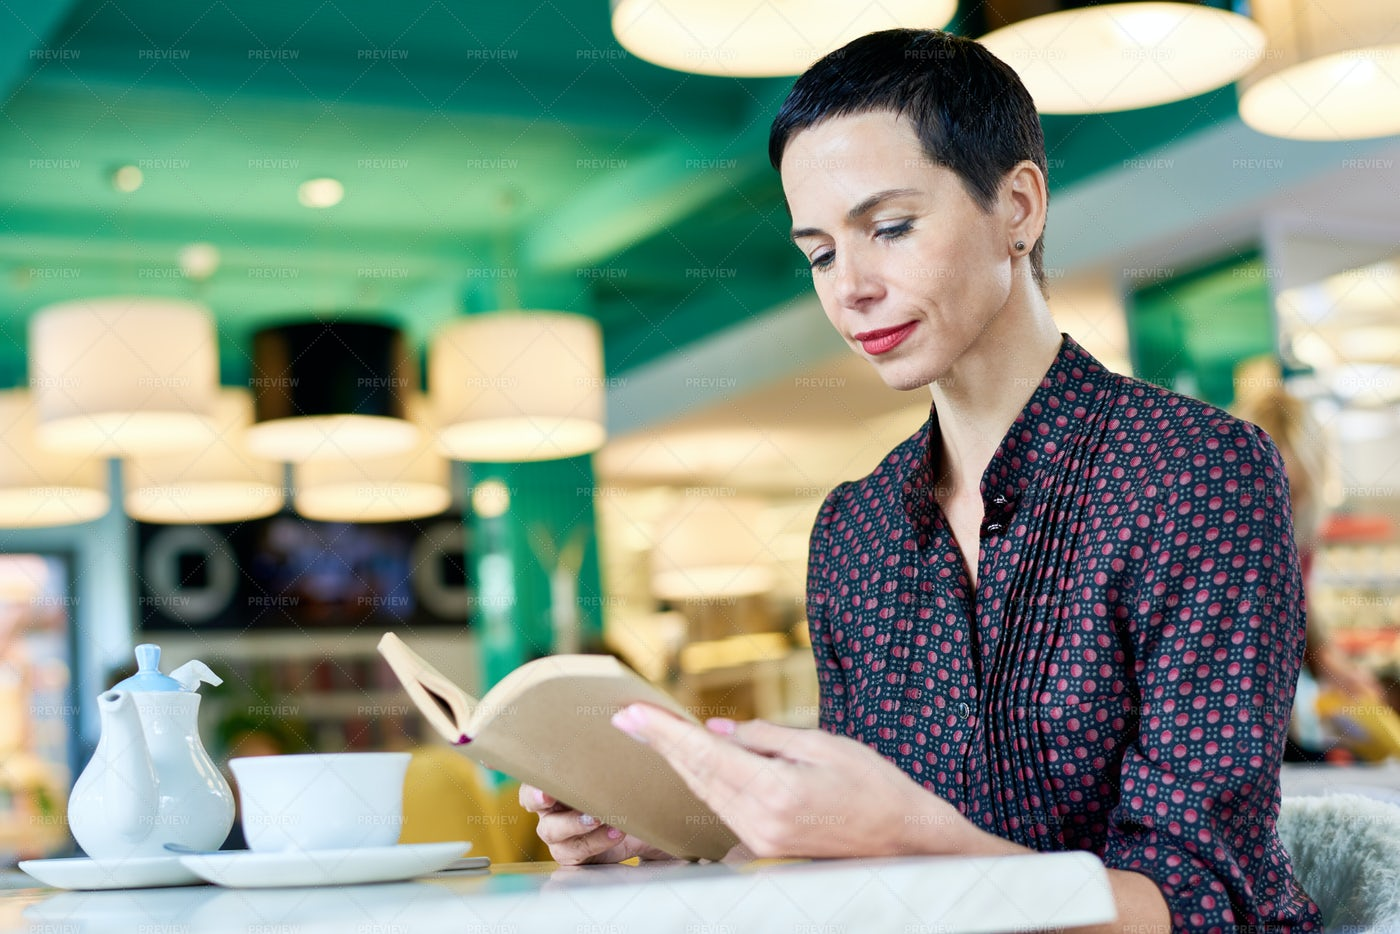 Elegant Woman Reading Book In Cafe: Stock Photos